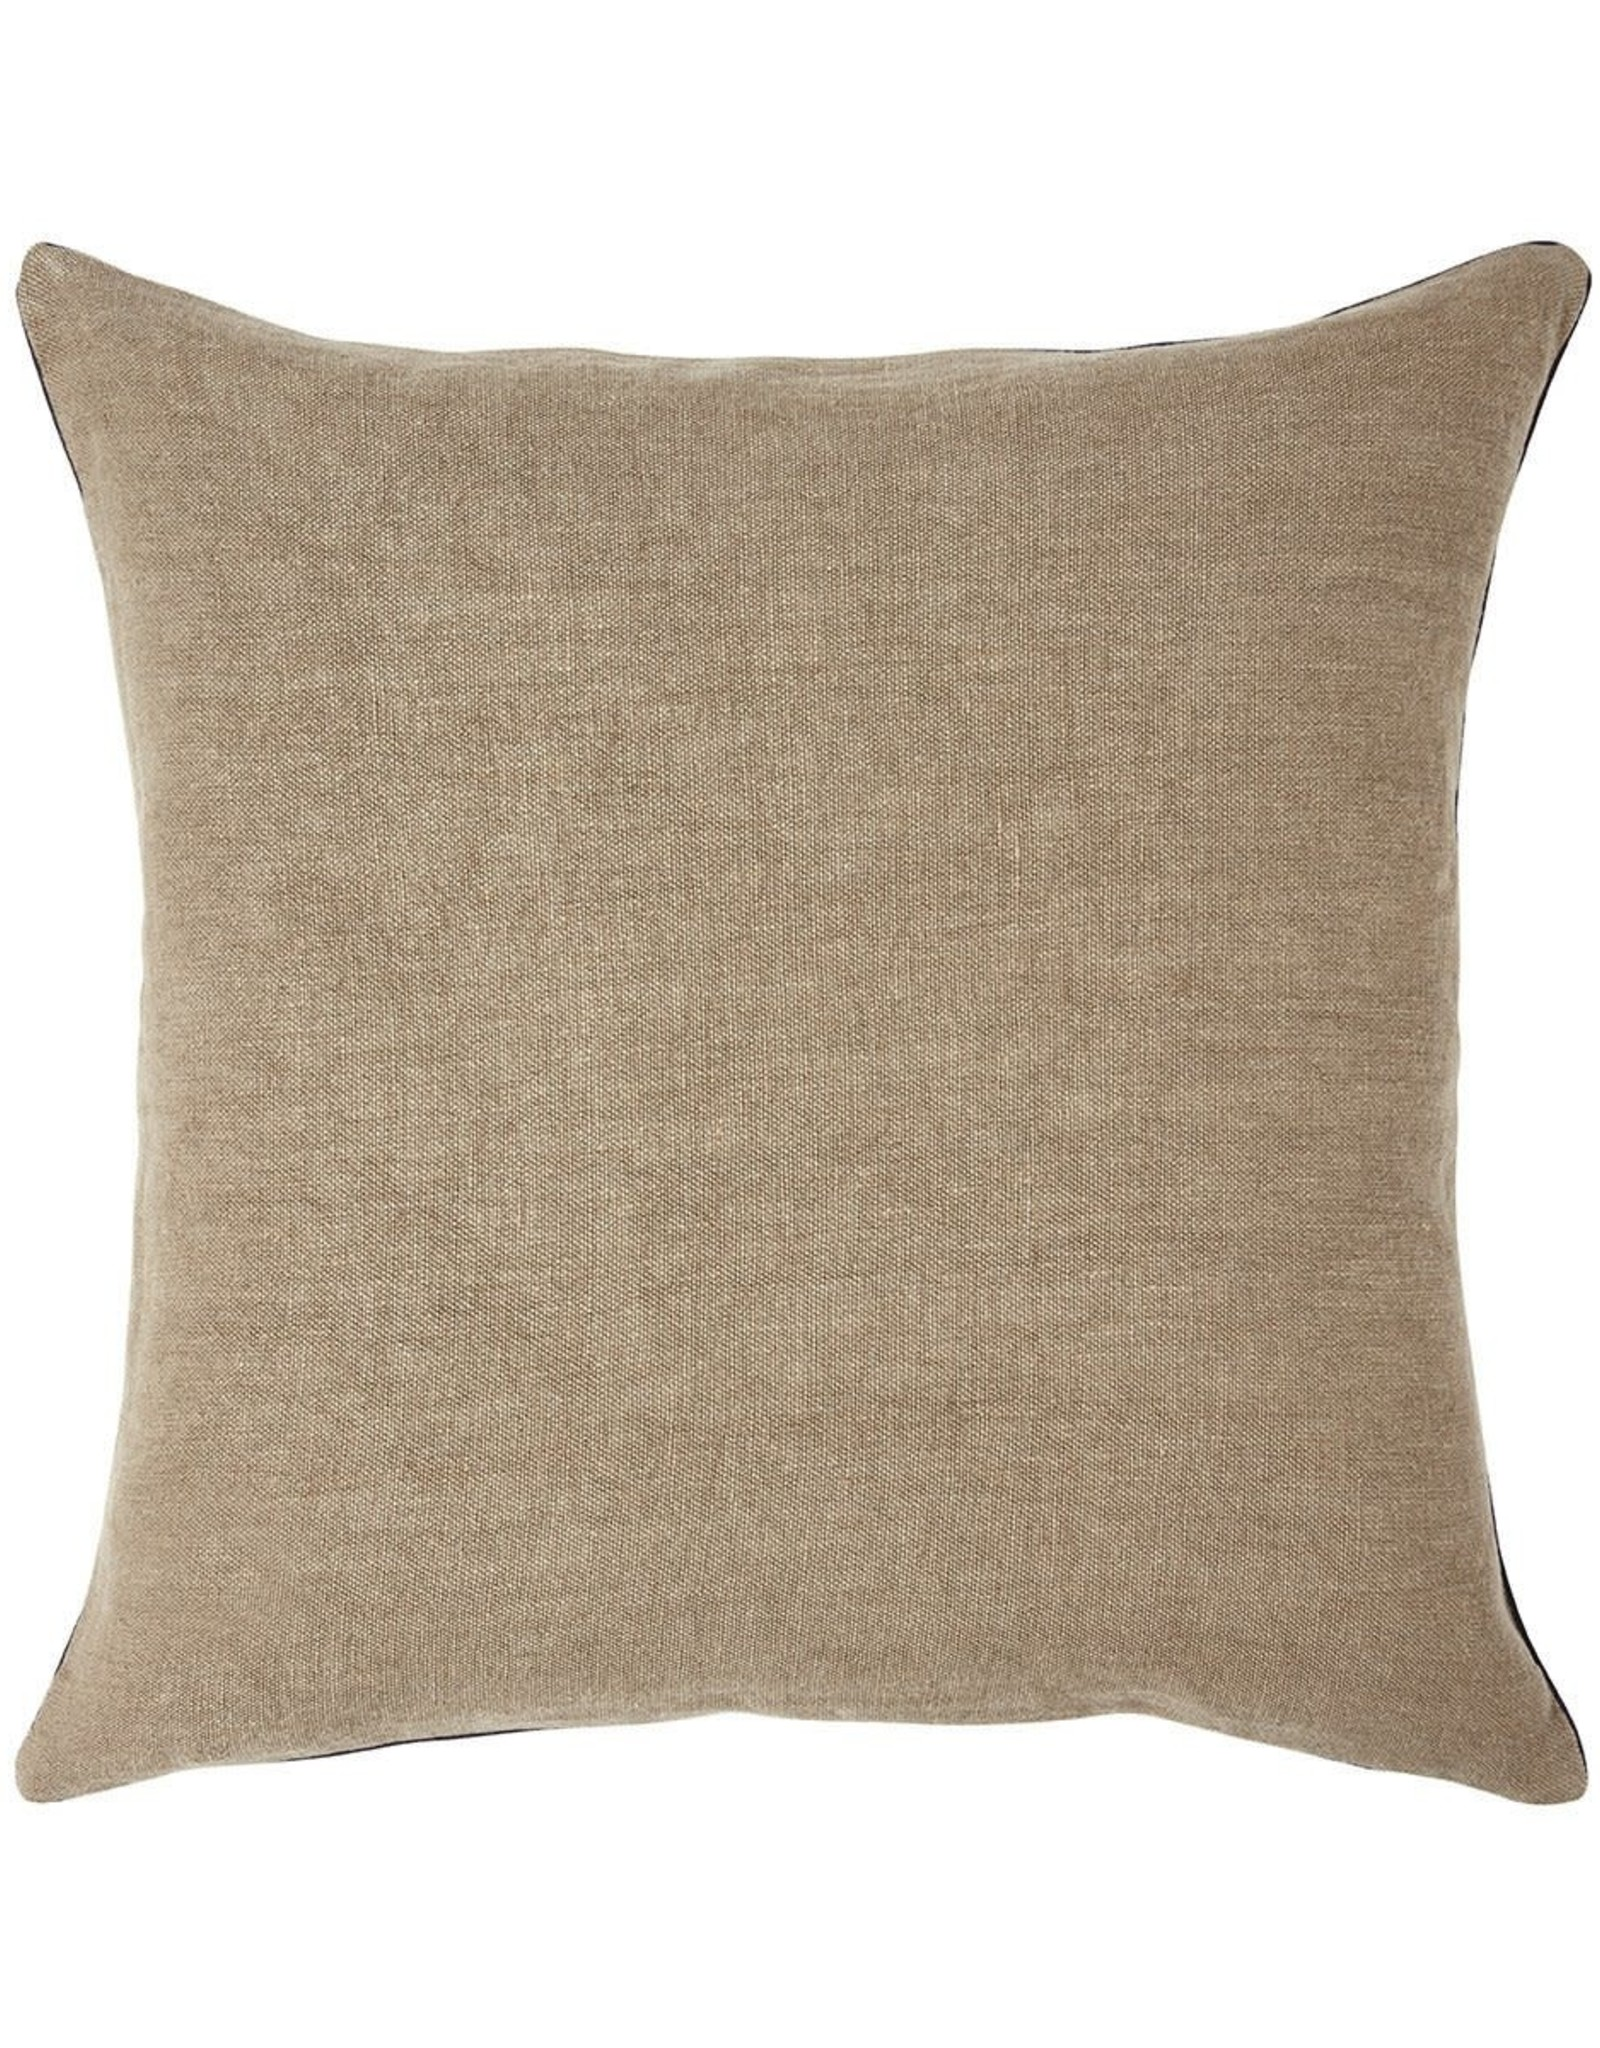 Iosis by Yves Delorme Pigment Decorative Pillow 22x22 by Iosis - Yves Delorme